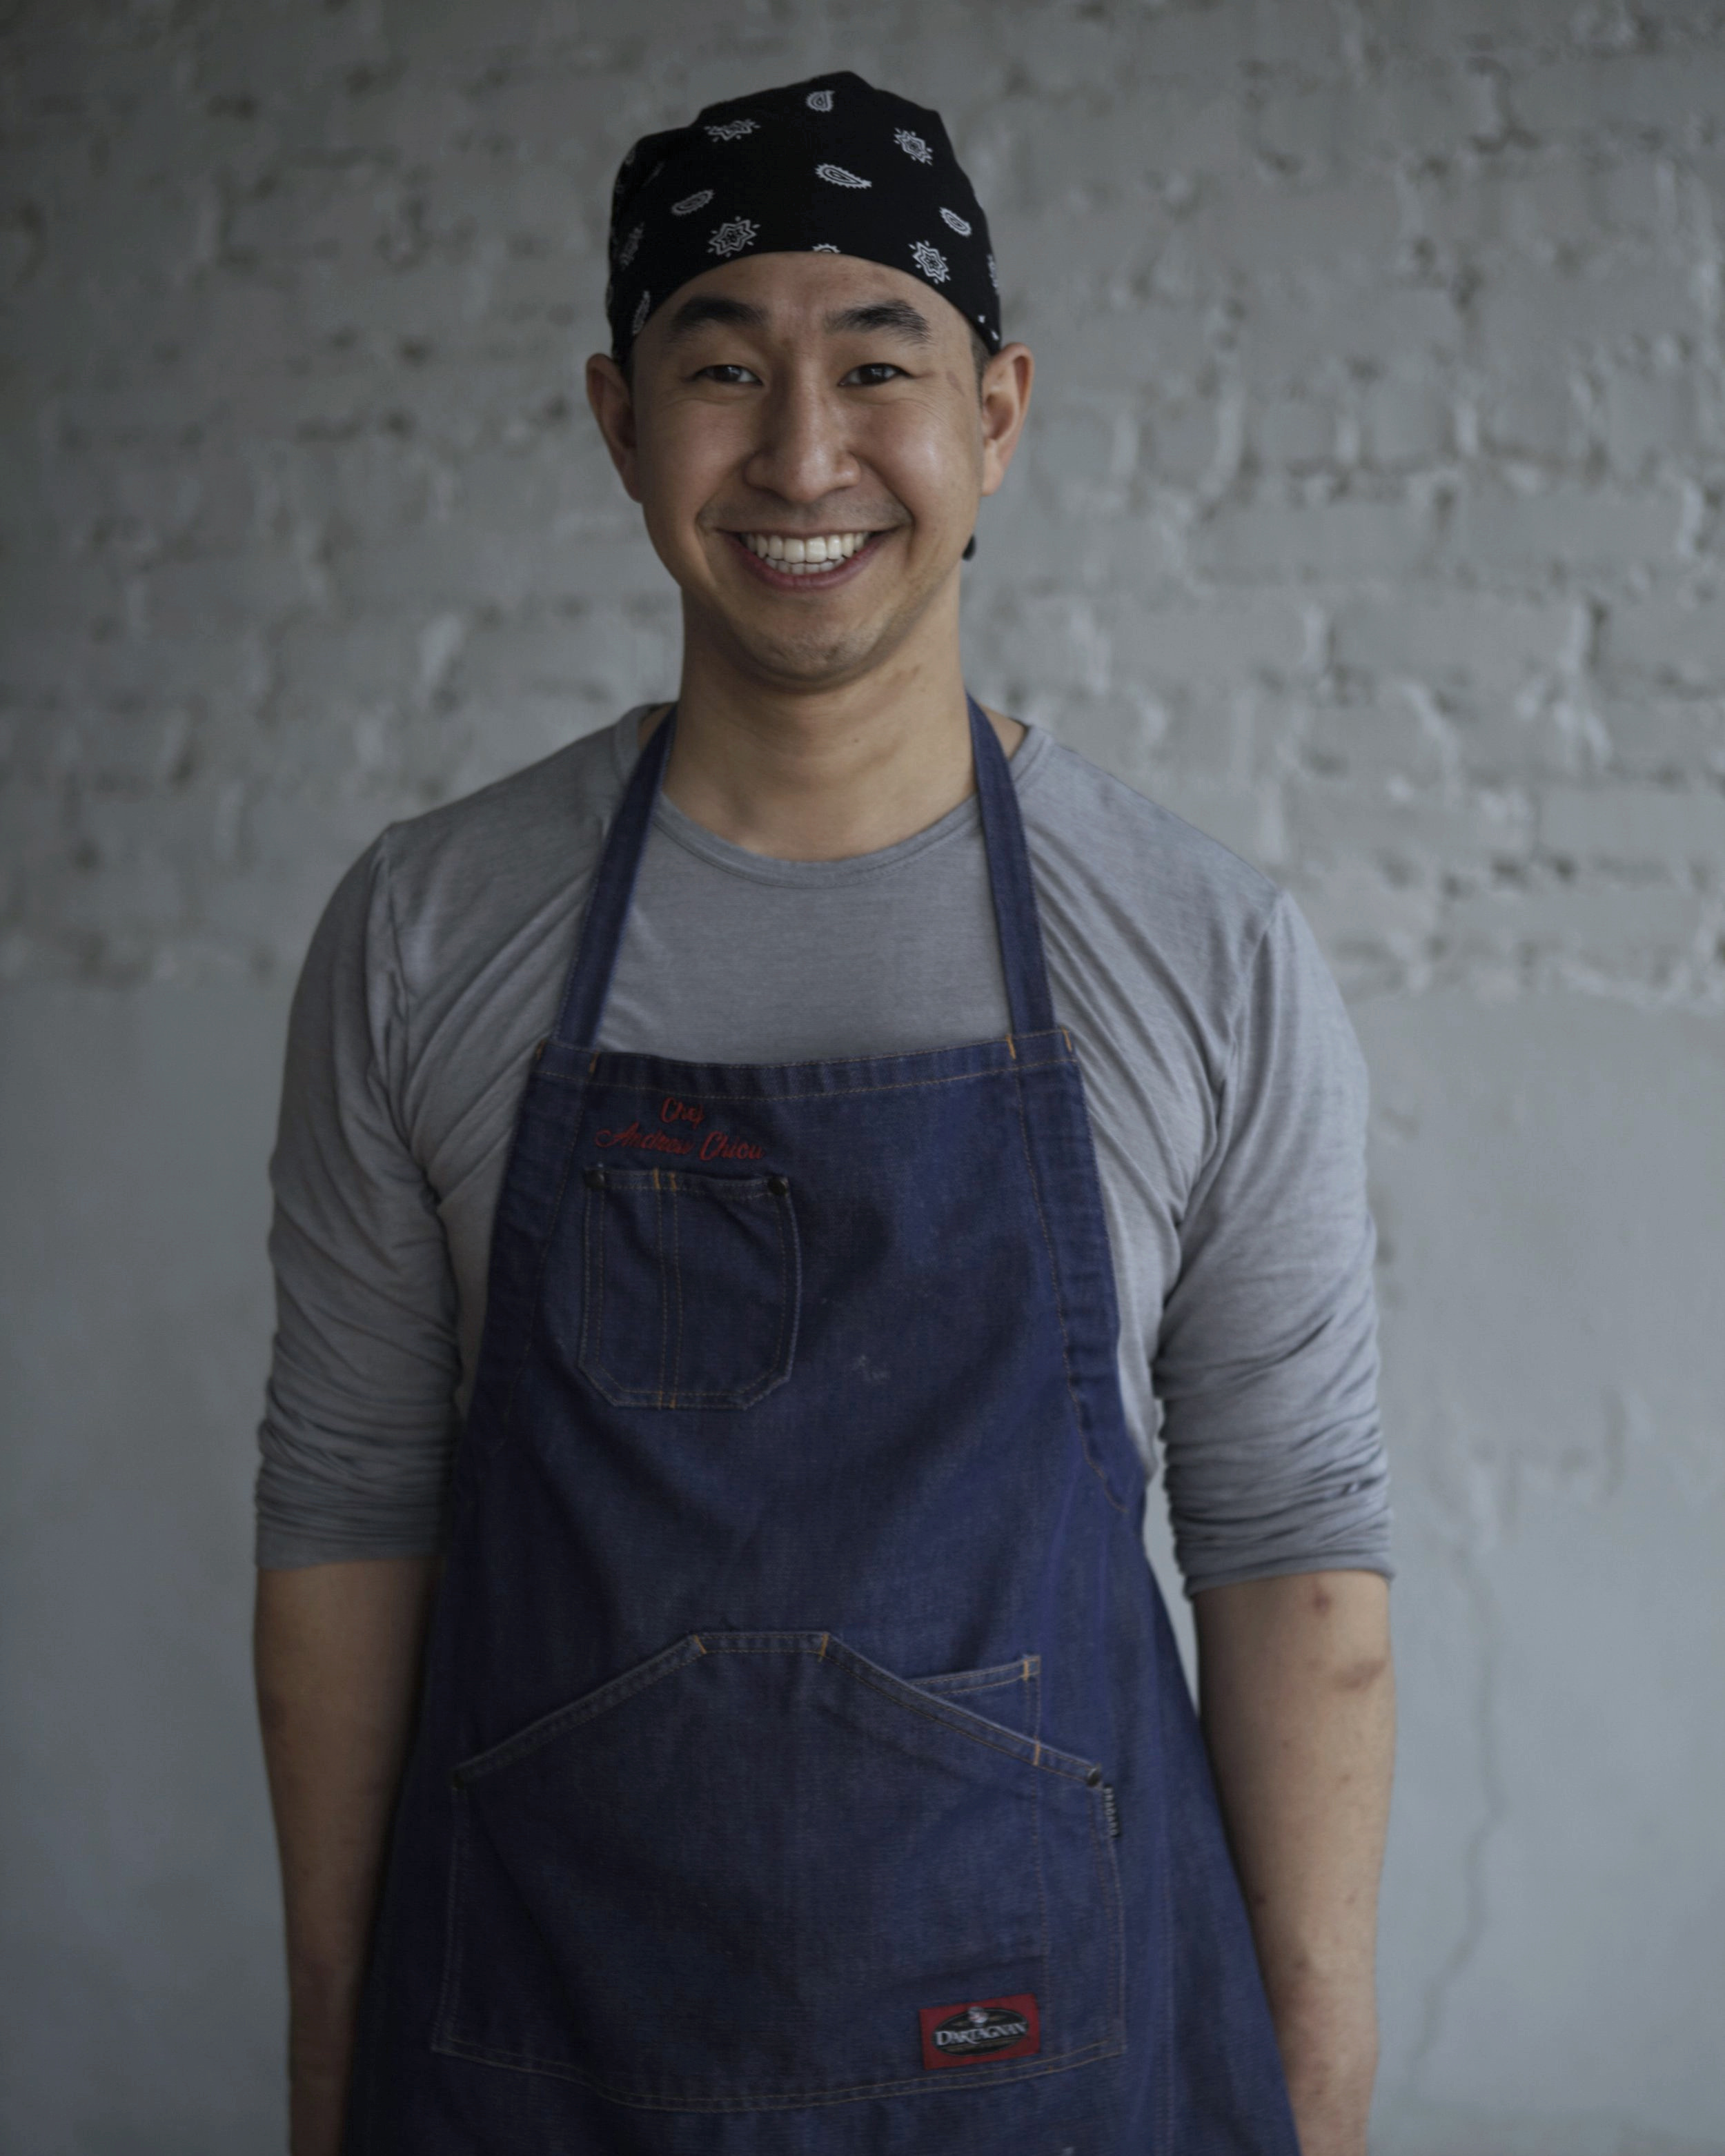 Meet the chef - Andrew Chiou is the owner and executive chef of Momo Yakitori. With Texas roots, Chef Chiou's culinary style marries southern hospitality with an attention to detail that reflects his Taiwanese heritage and comes to life at Momo Yakitori through the careful preparation of seasonal, locally-sourced ingredients. Prior to opening Momo Yakitori, he was executive chef of the U.S. Department of State. He is a graduate of the Culinary Institute of America.